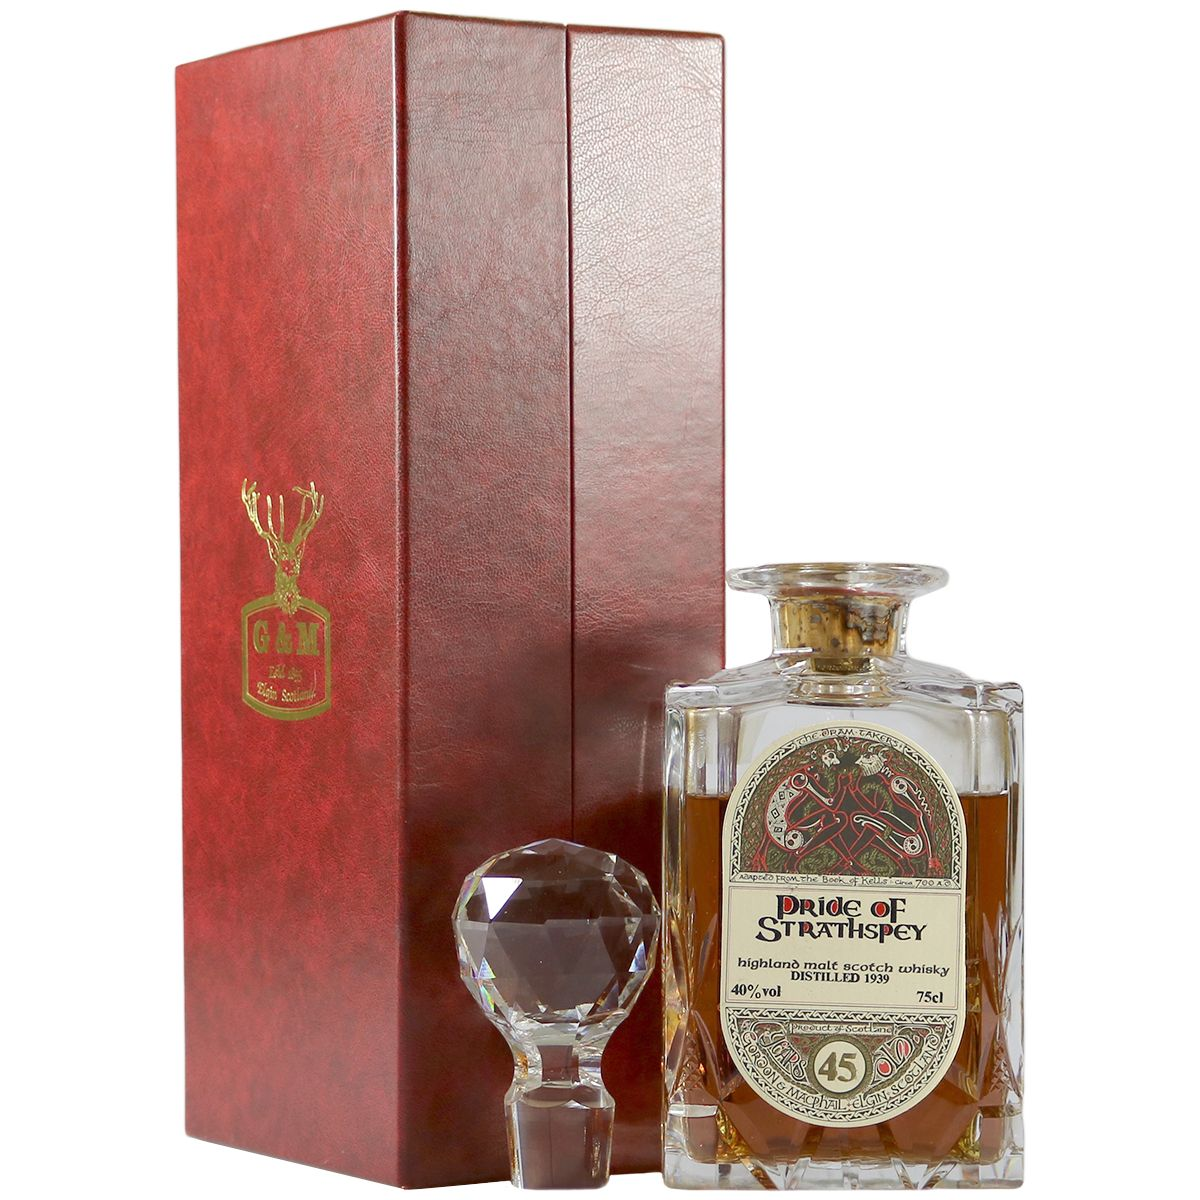 Pride of Strathspey 1939 45 Year Old Decanter | The Whisky Vault